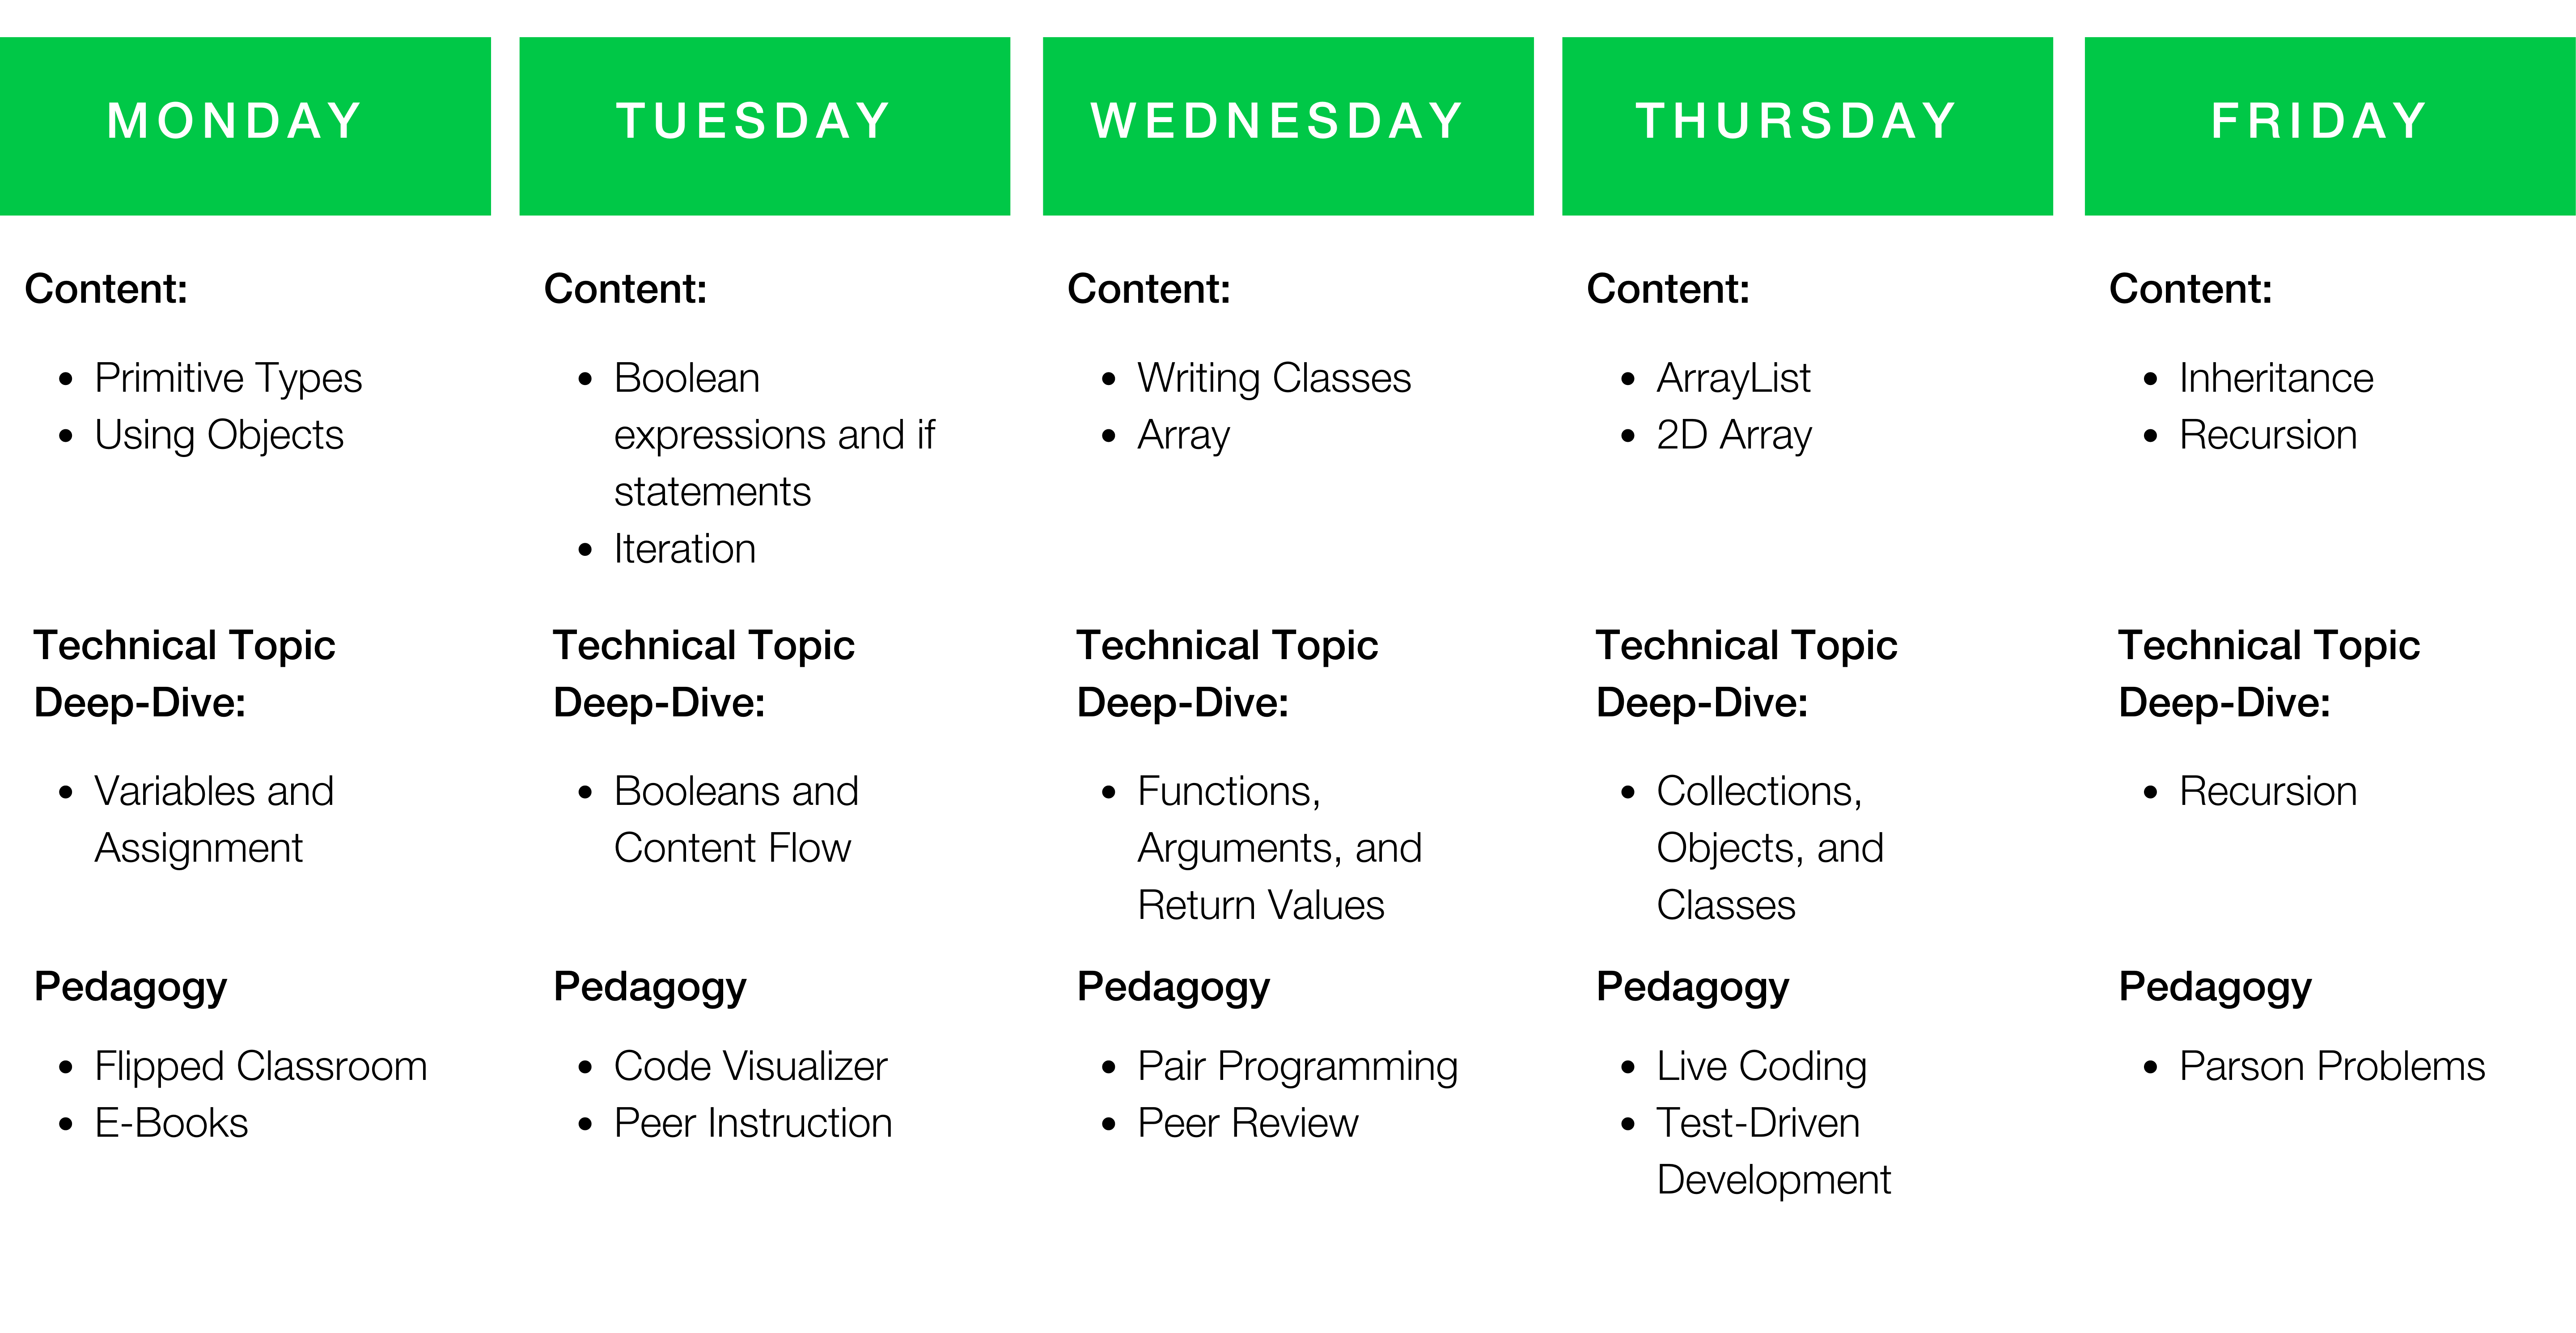 2021 - K12 PD - Schedule of Content